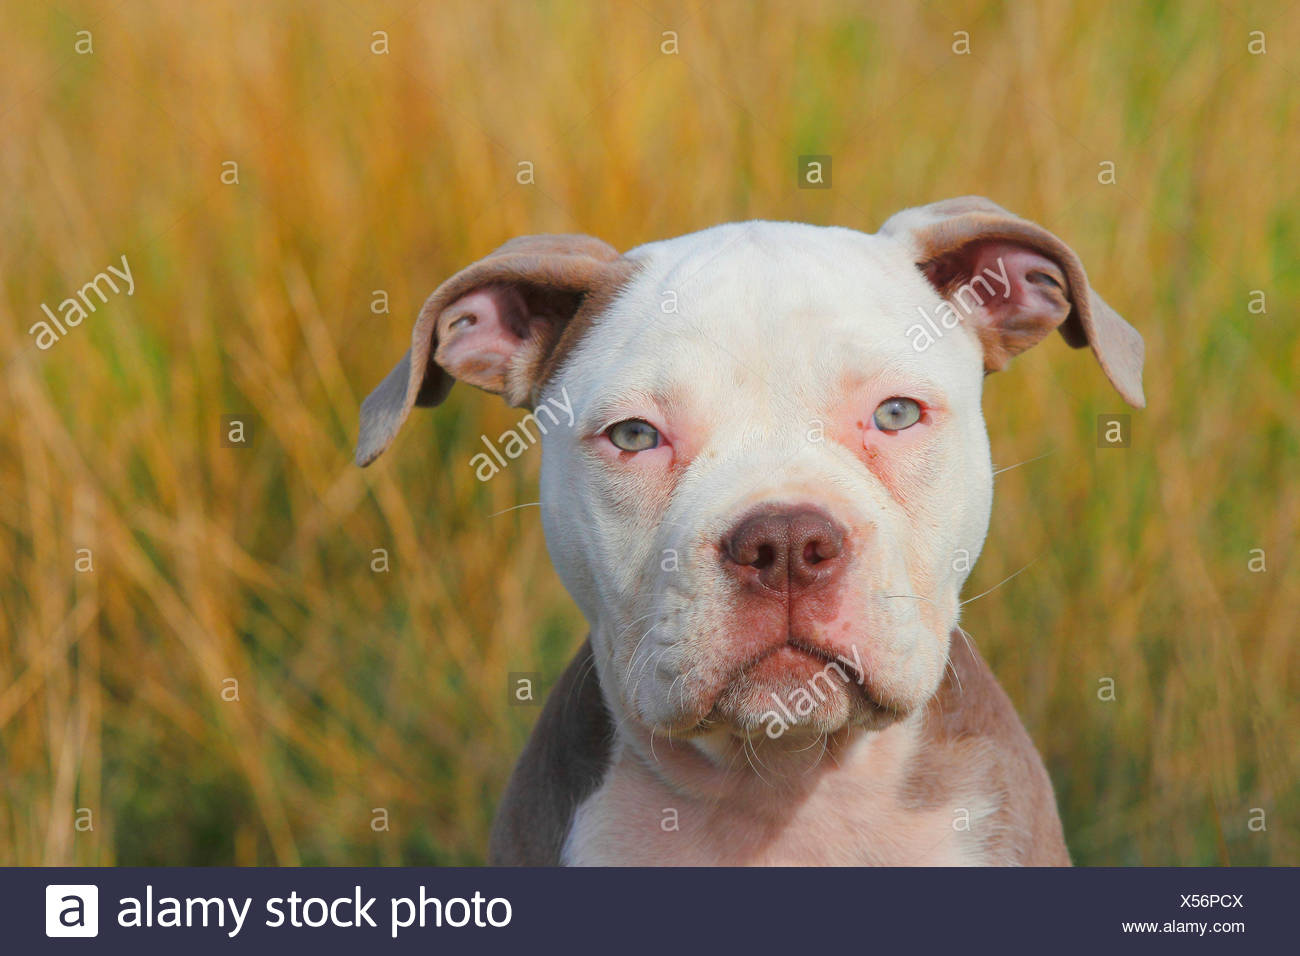 Olde English Bulldog (Canis lupus f. familiaris), twelve weaks old puppy sitting in a meadow, portrait, Germany - Stock Image